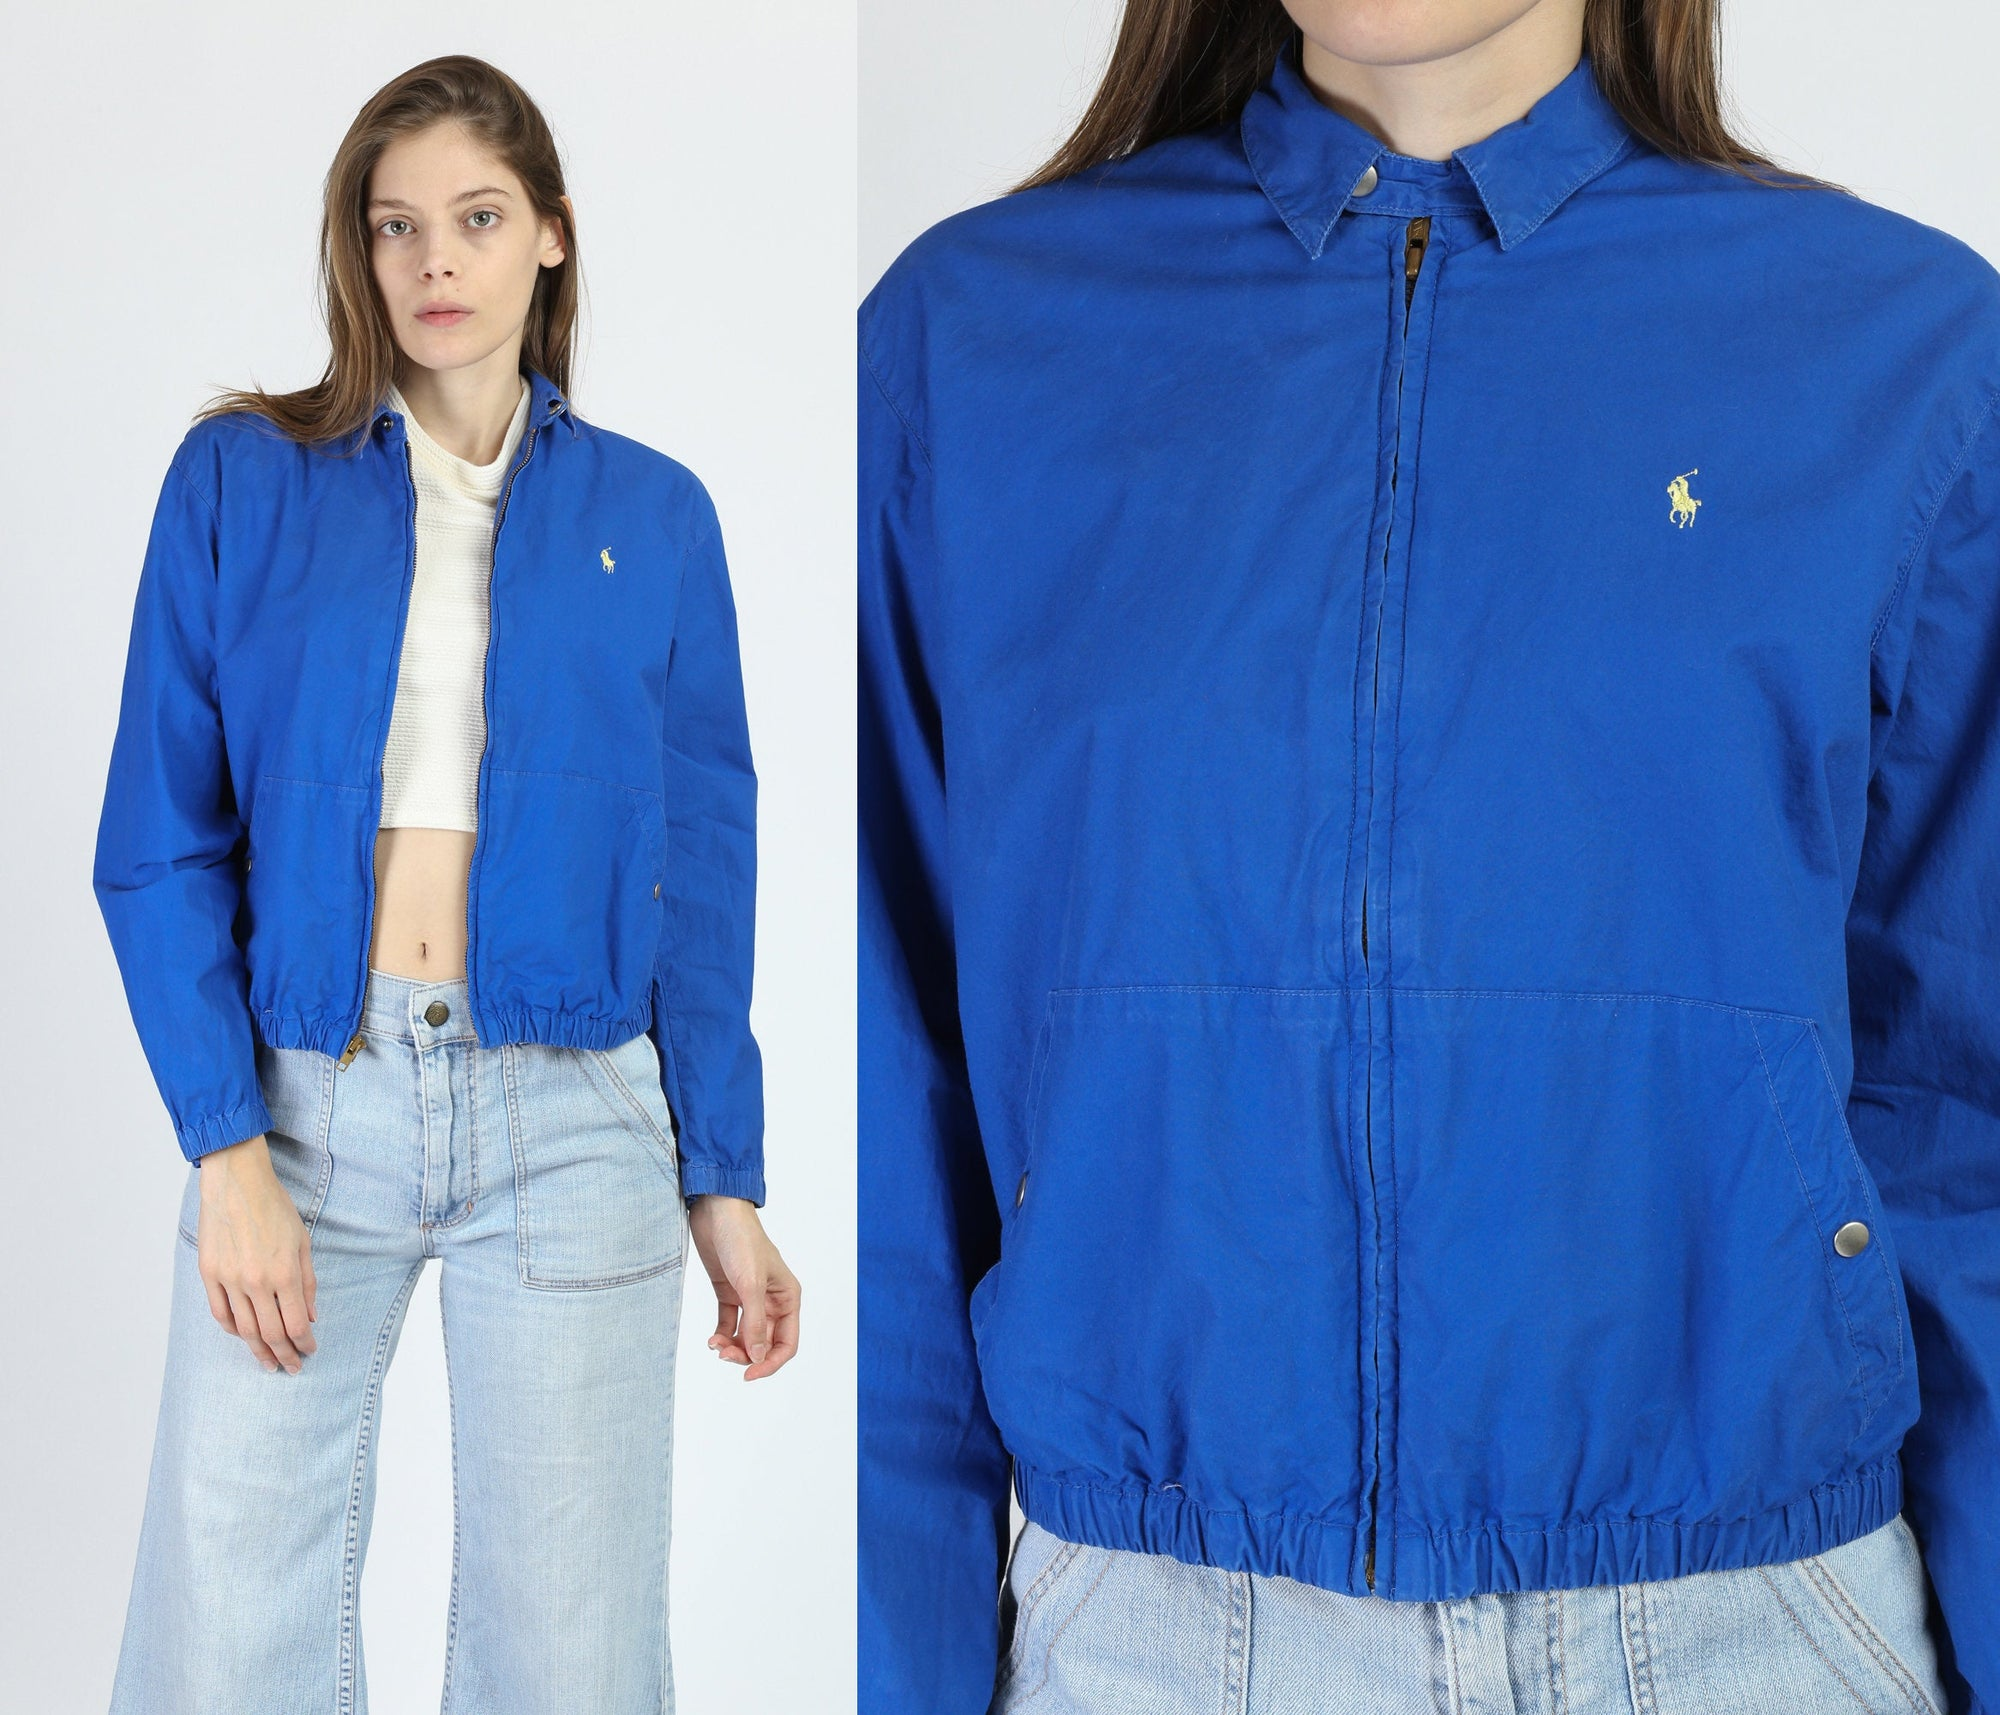 80s Blue Ralph Lauren Polo Jacket - Petite Medium